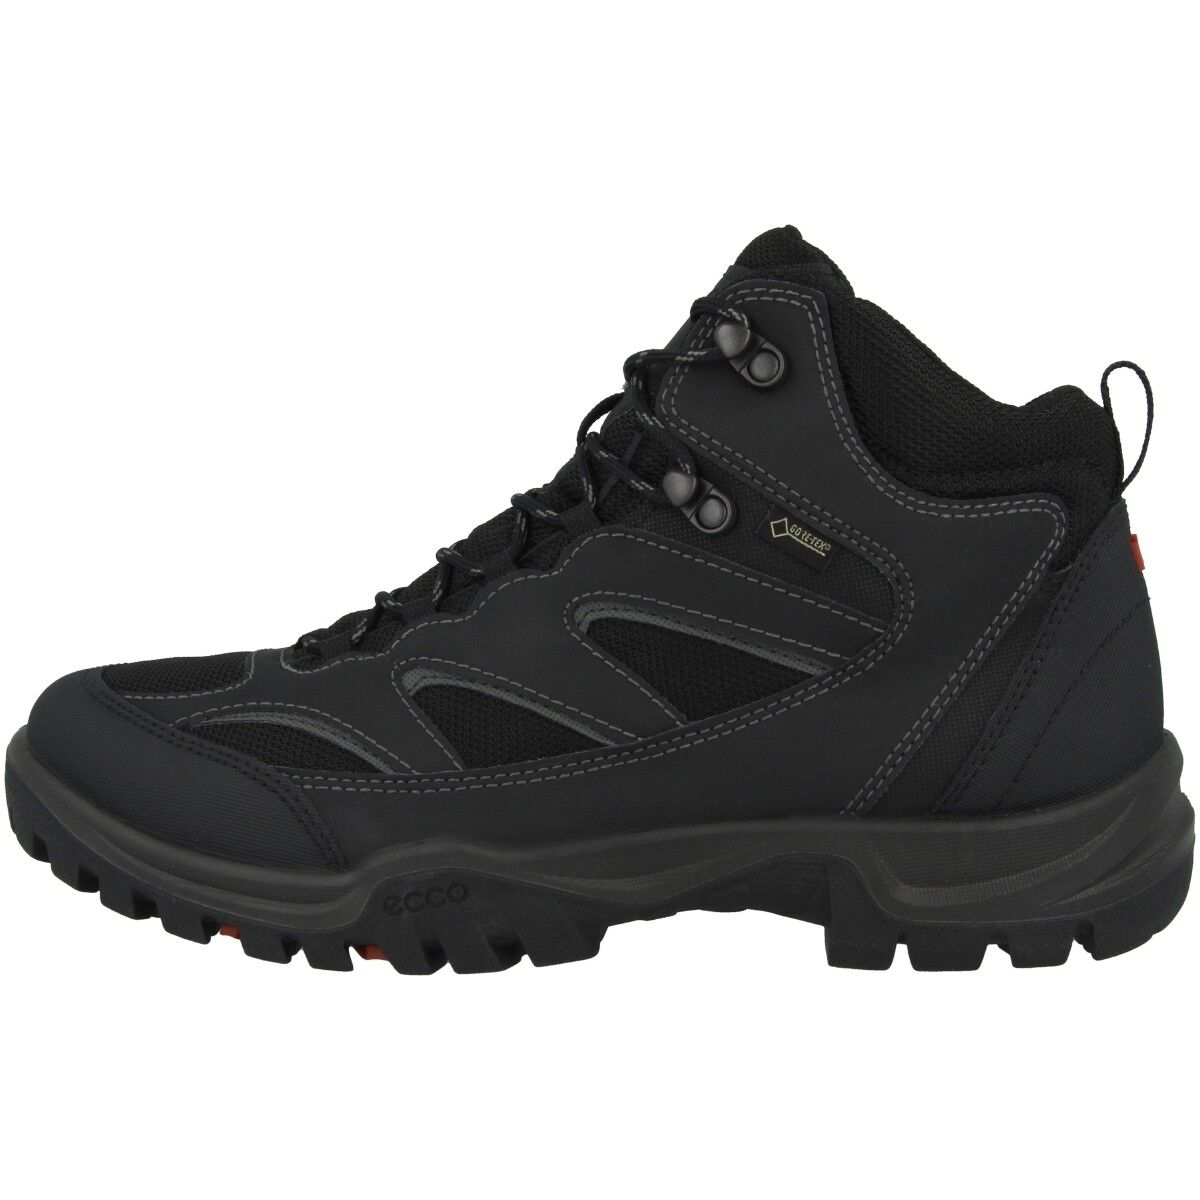 Ecco Xpedition III Drak MID GTX Men Outdoor Gore-Tex Schuhe schwarz 811164-53859